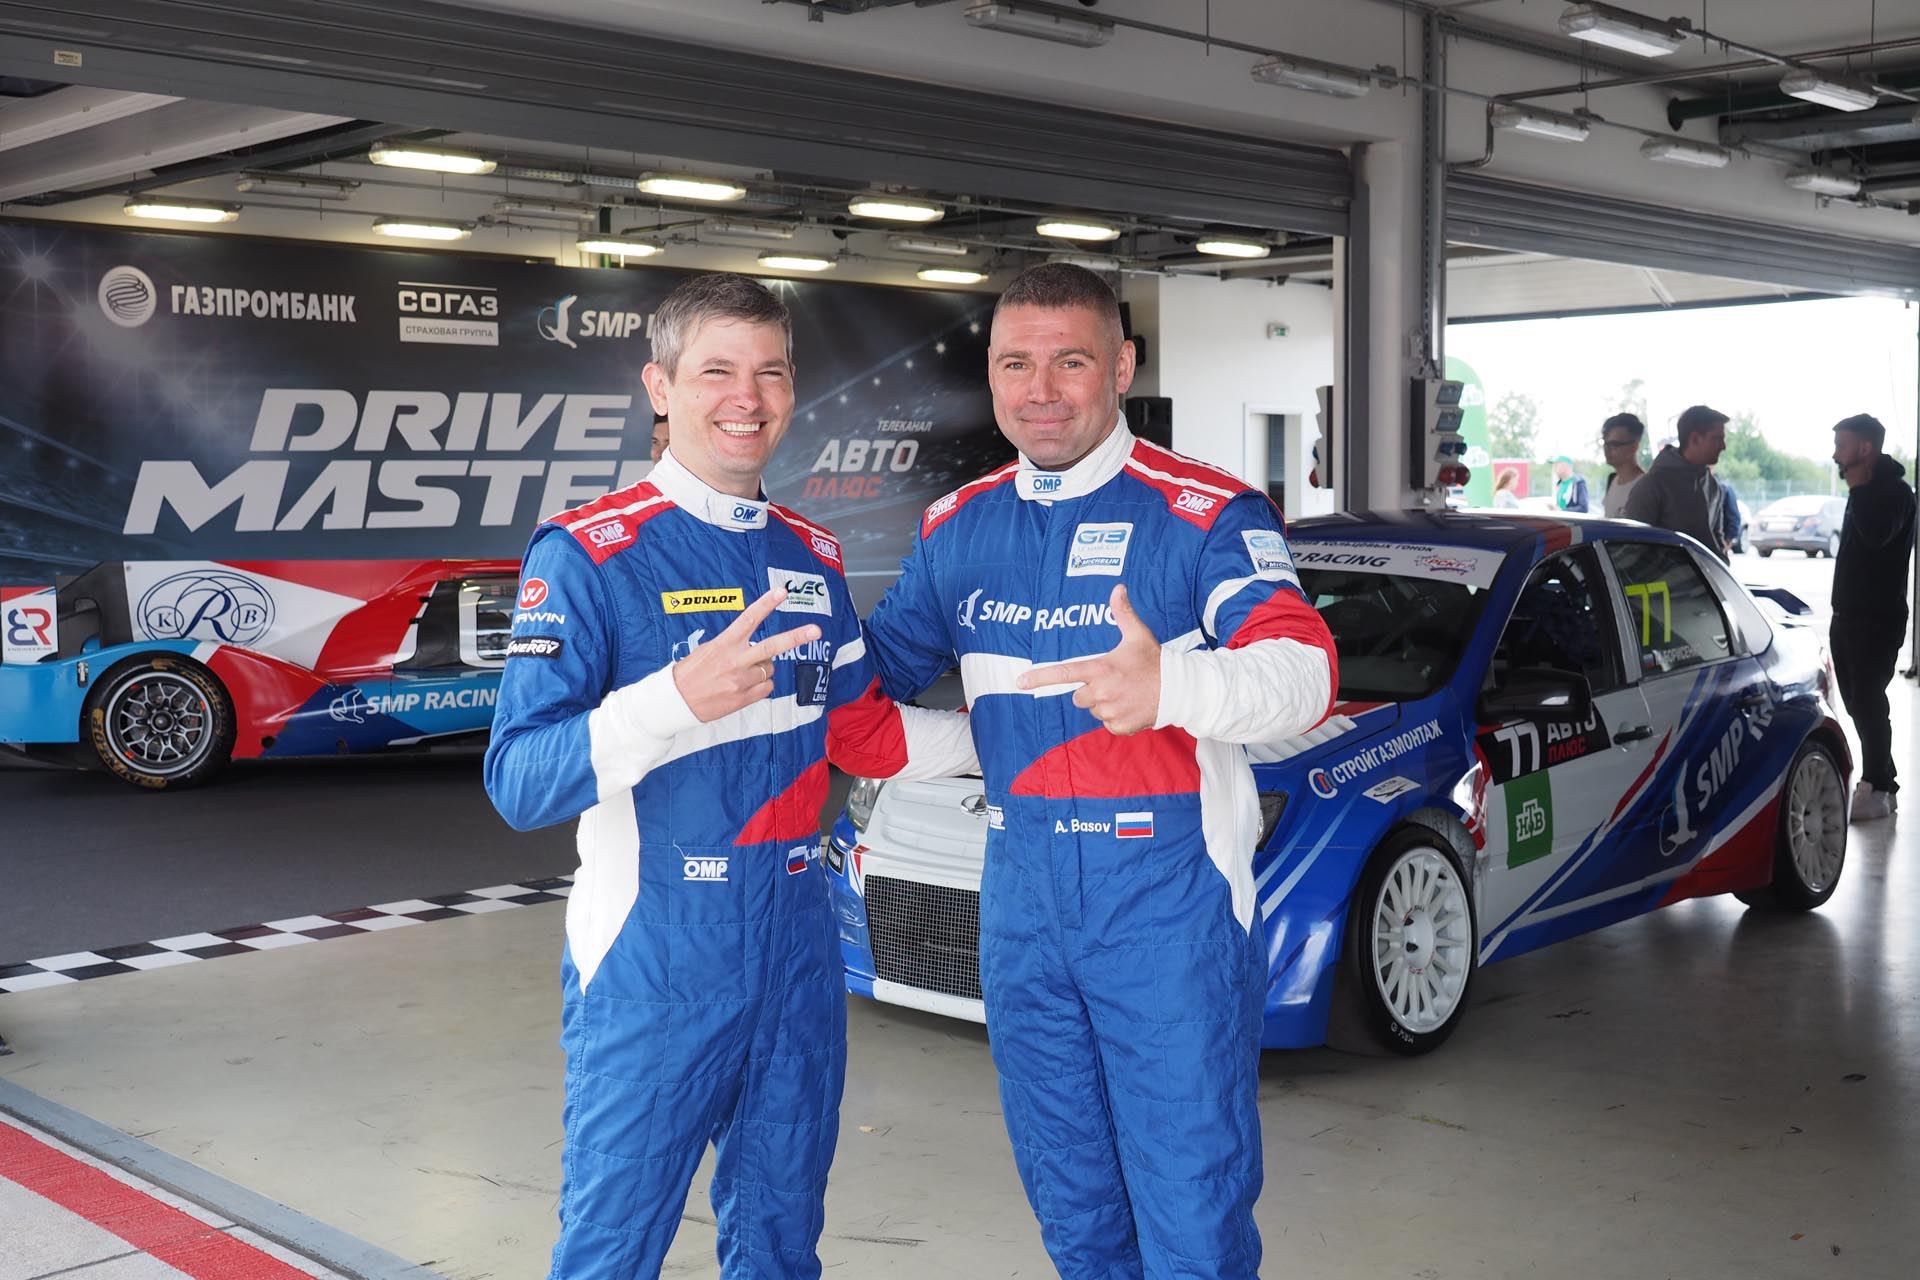 3_SMP Racing_Alexey Basov and Kirill Ladygin.jpg